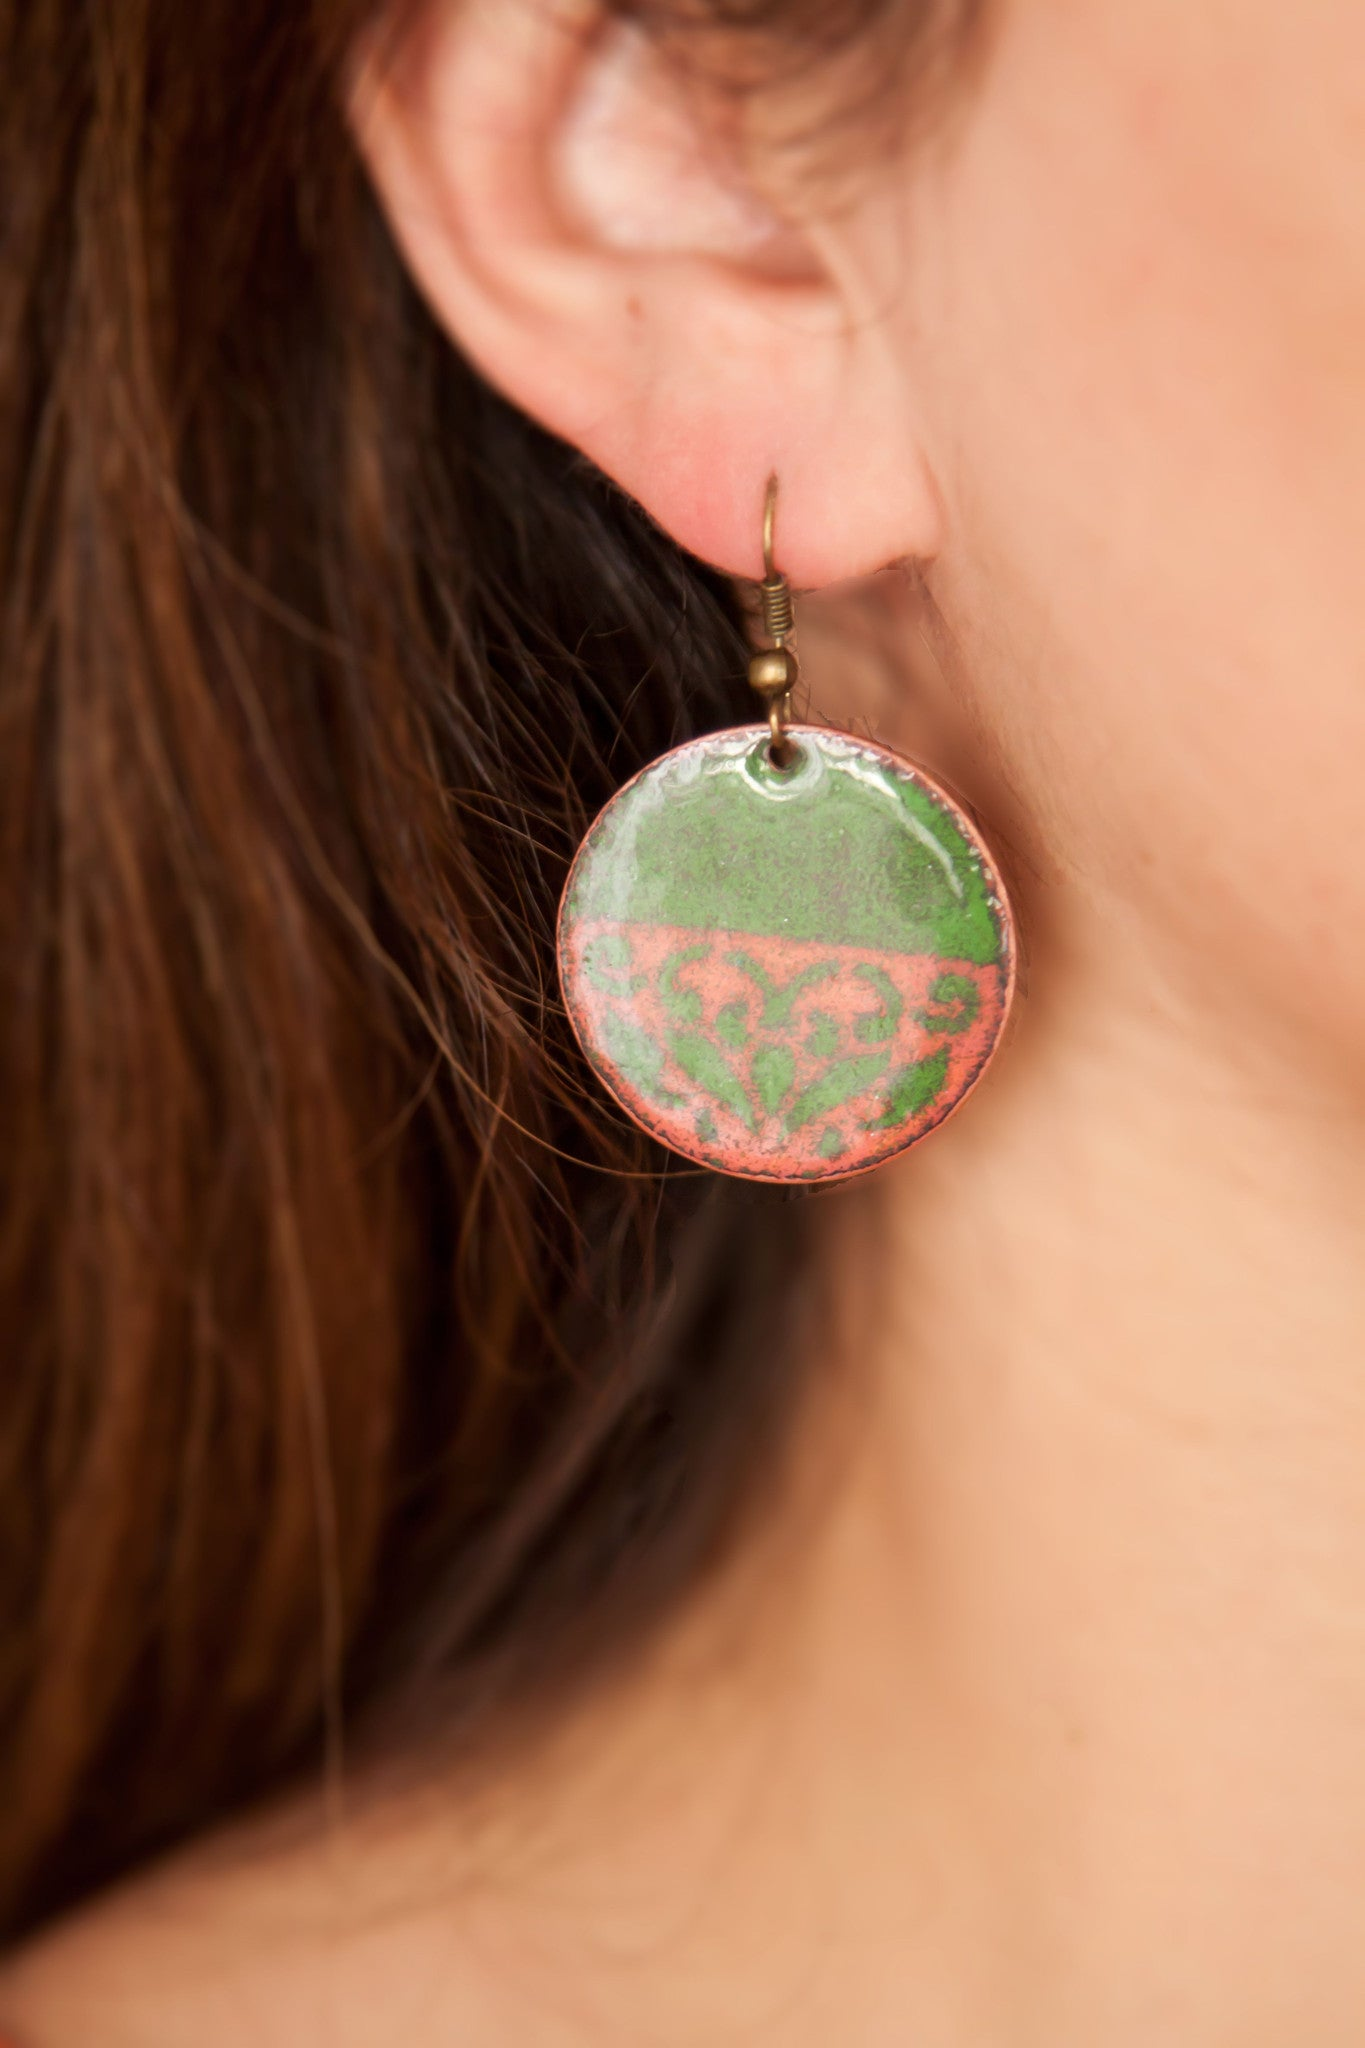 Green Enamel Earring - Artsy Artworks